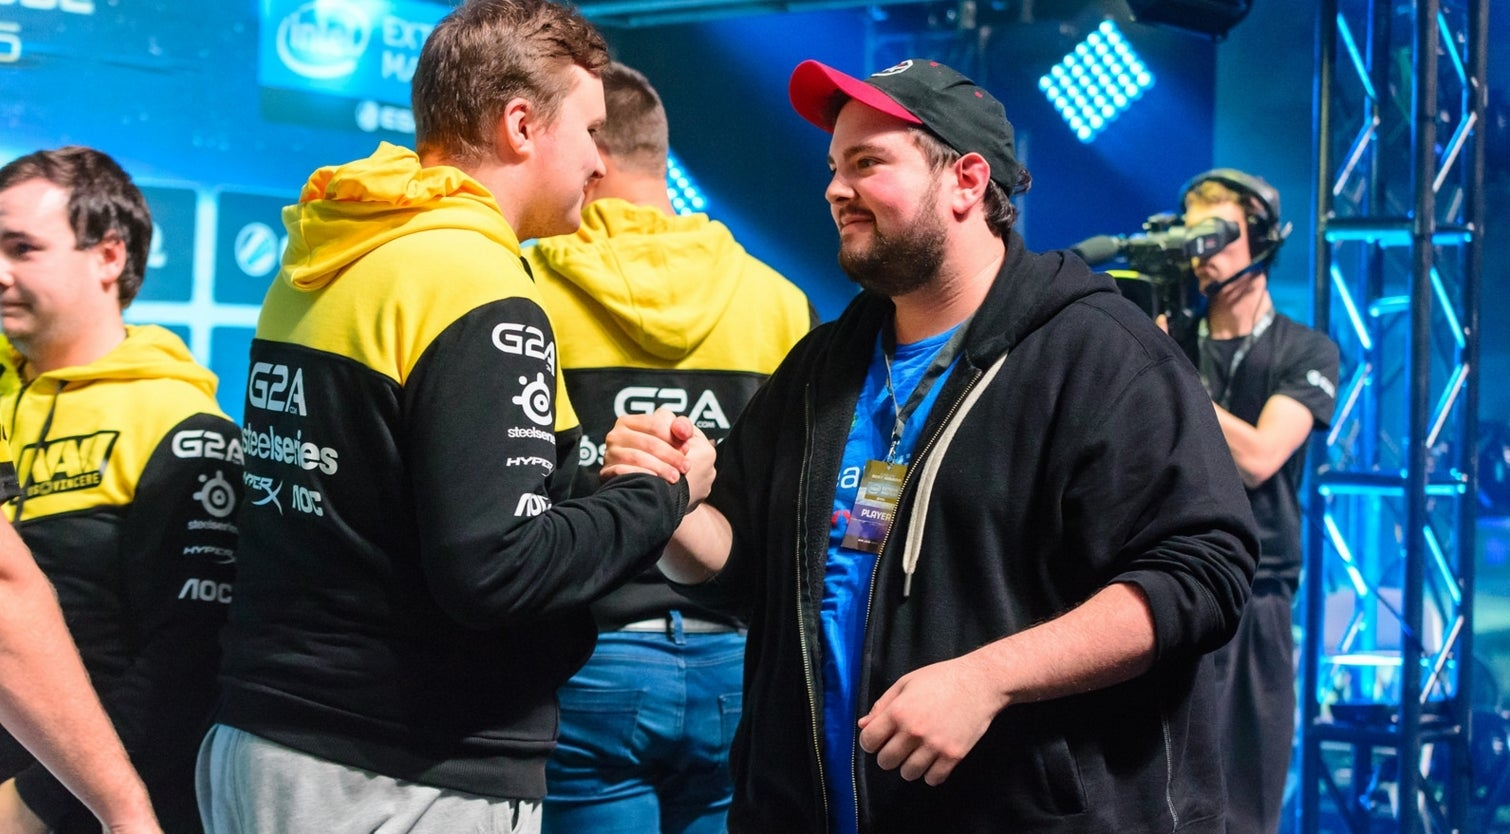 The American Underdogs Of Counter-Strike